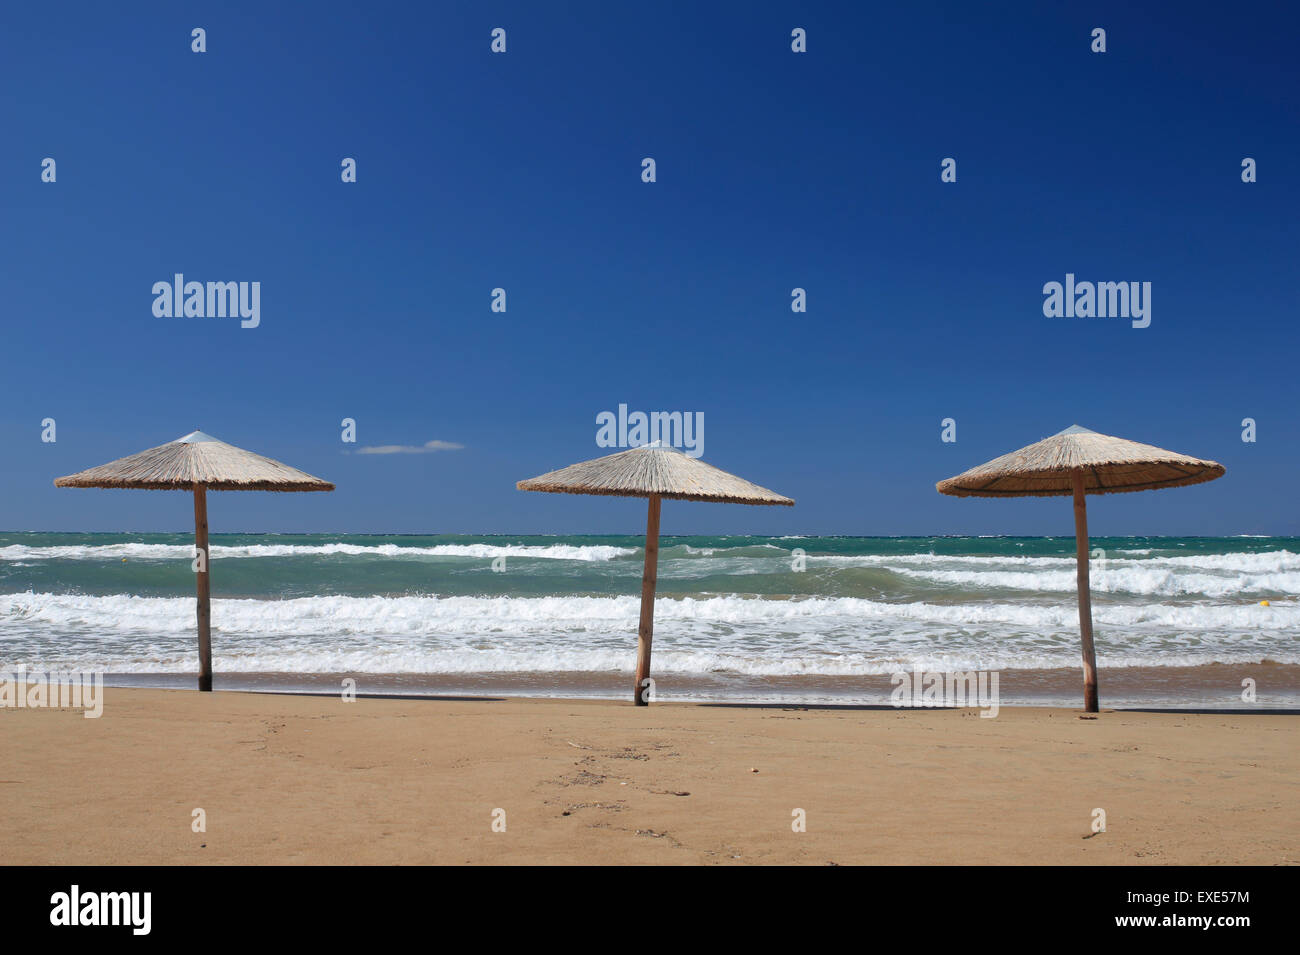 Three Umbrella Kiosks And White Billows Surge Of The Sea At Reha Rixa Recha Nera Beach Androni Suburb Myrina Limnos